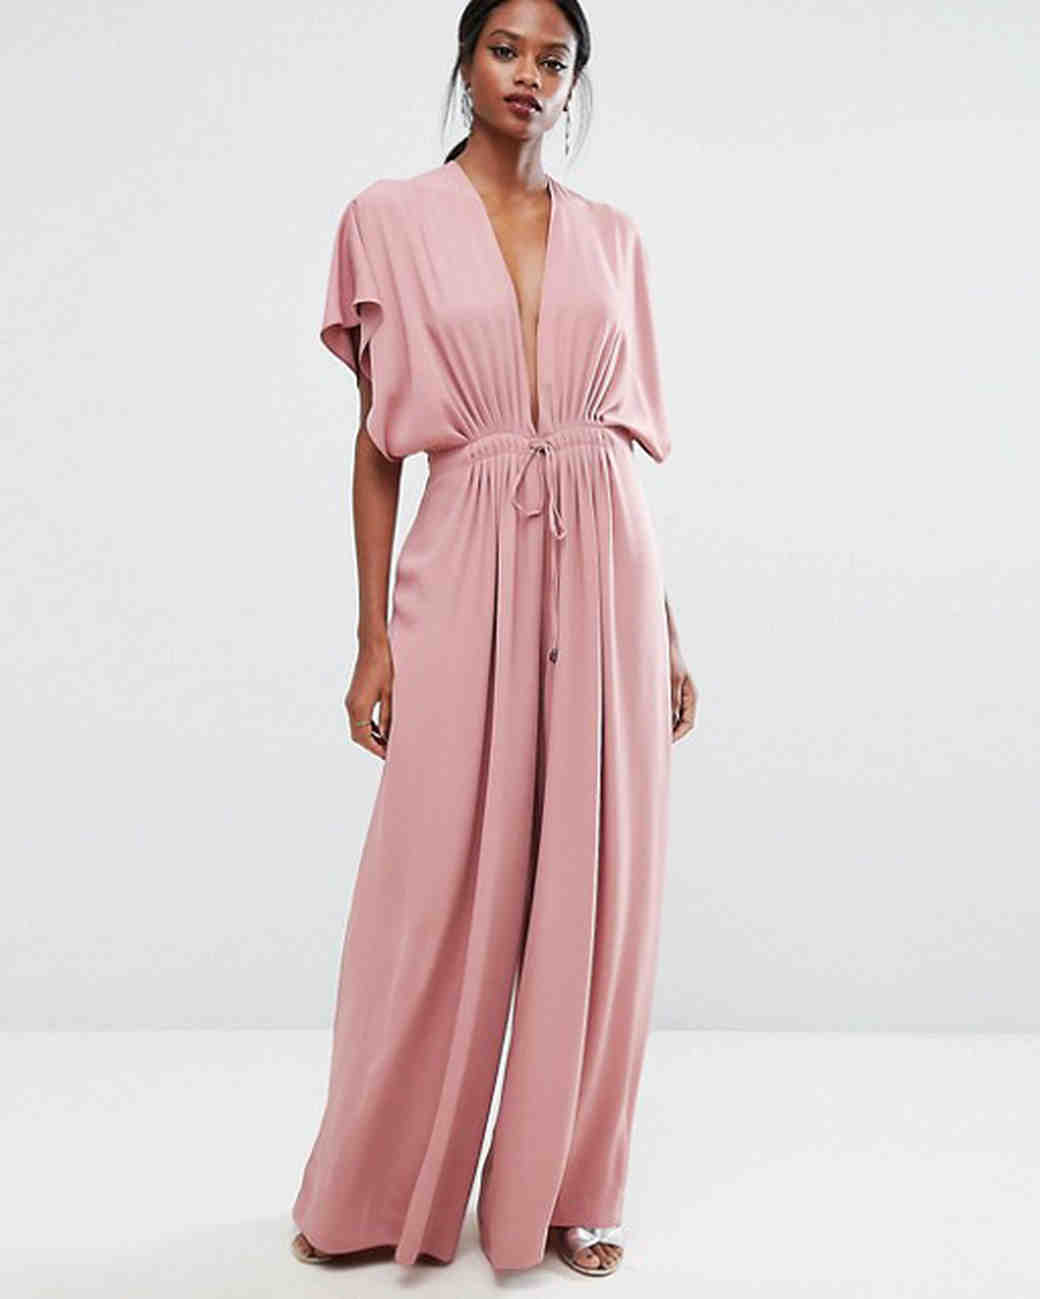 26 Chic Bridesmaid Jumpsuits | Martha Stewart Weddings